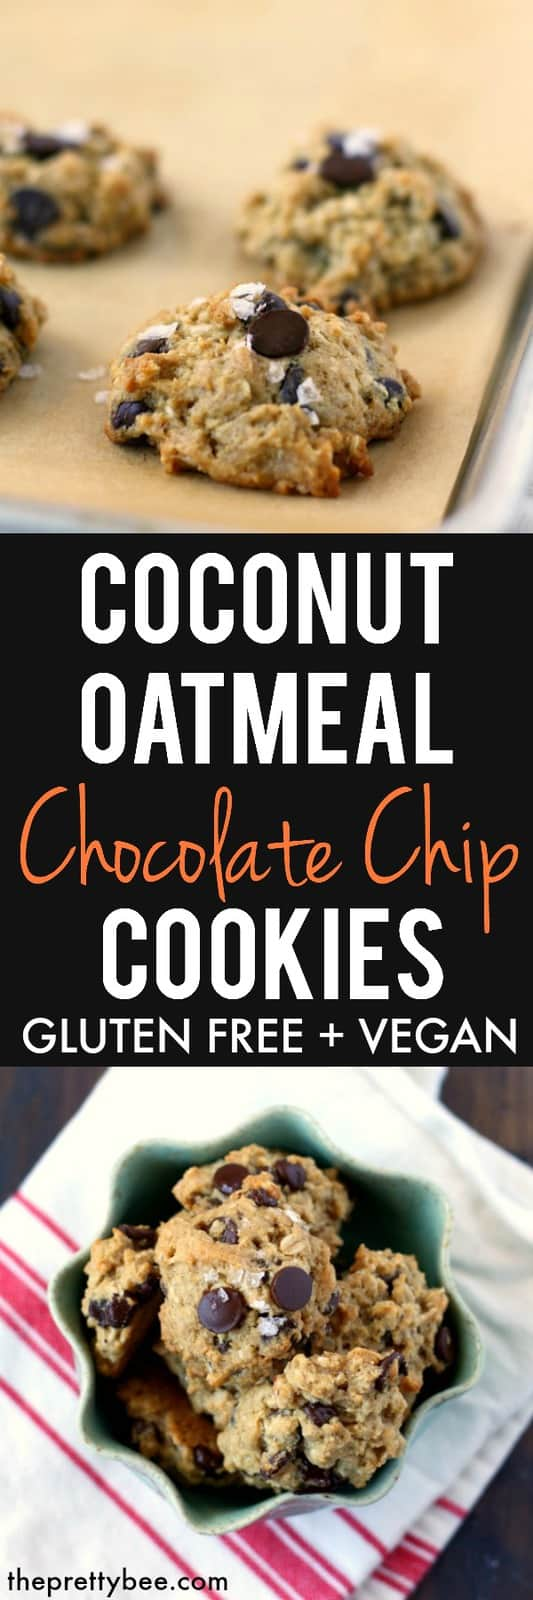 Chewy, chocolatey, filled with oats and dusted with sea salt, these cookies are the best!  #glutenfree #dairyfree #vegan #coconut